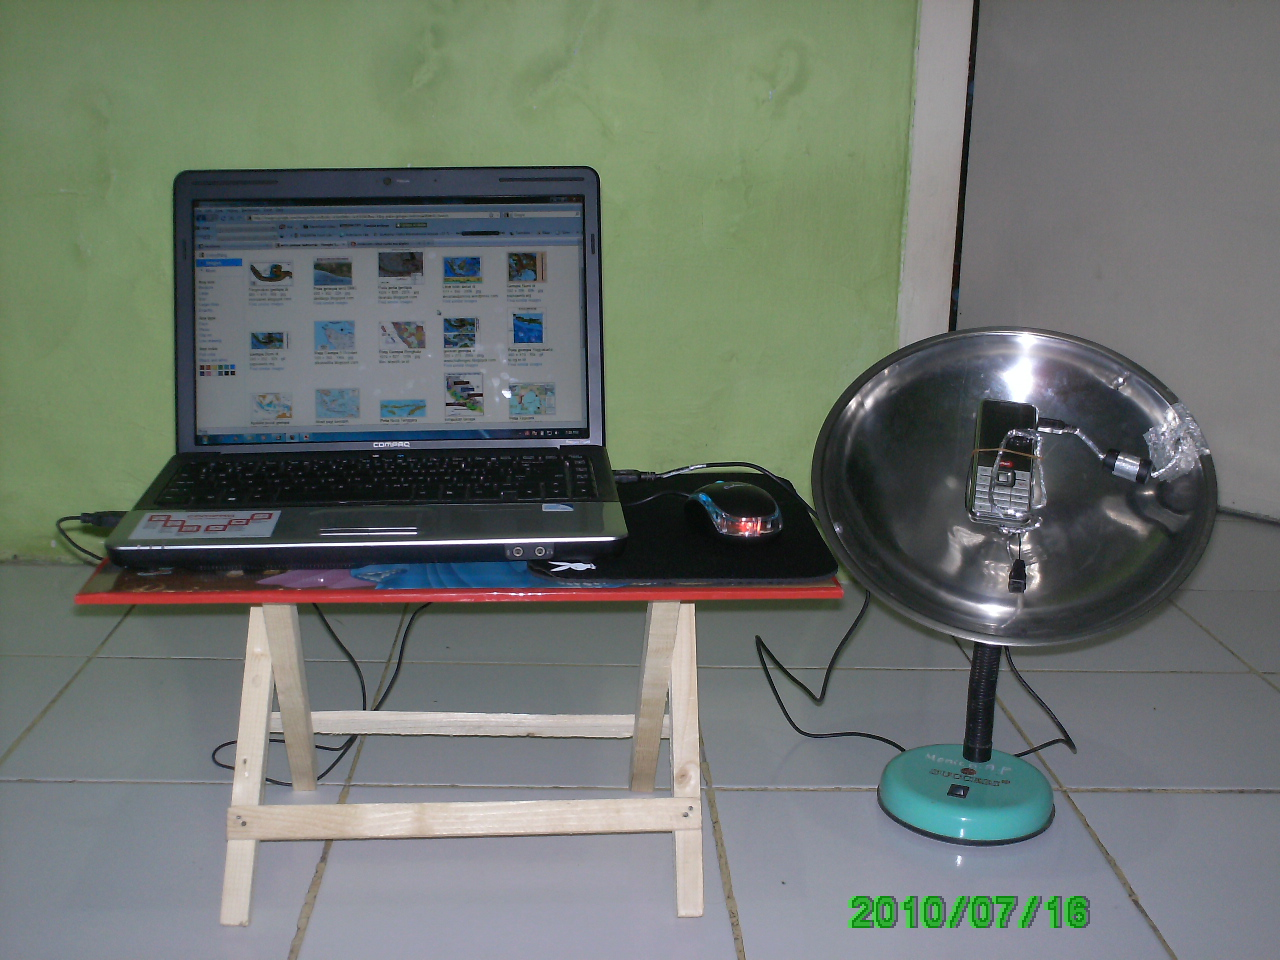 Soegi Jawa 2010 500w Modified Sine Wave Inverter Controlled By Pic16f628a Antena Sederhana Penguat Sinyal Hp Modem Usb Moden